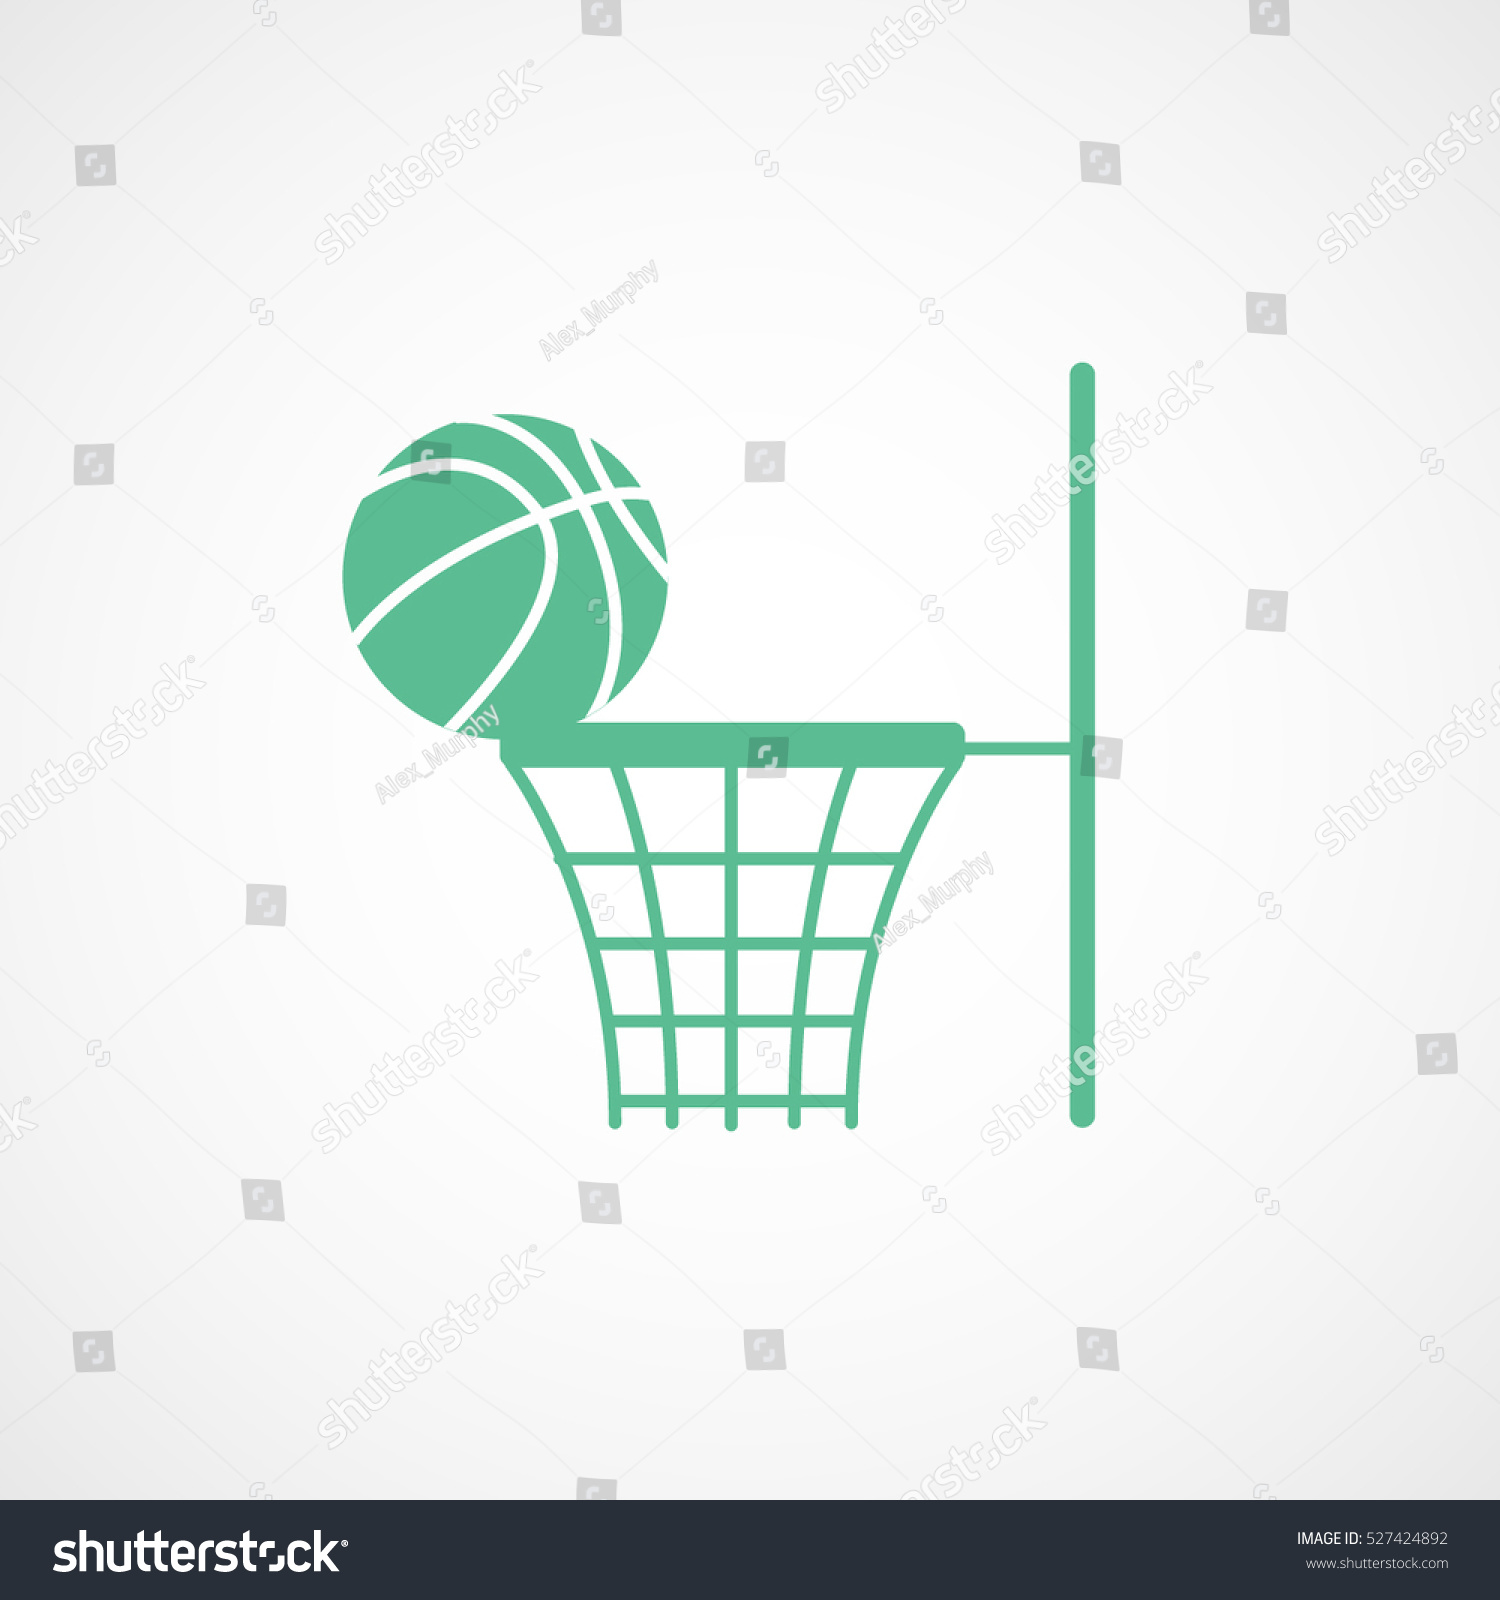 Basketball Hoop Green Flat Icon On Stock Vector Royalty Free Diagram White Background